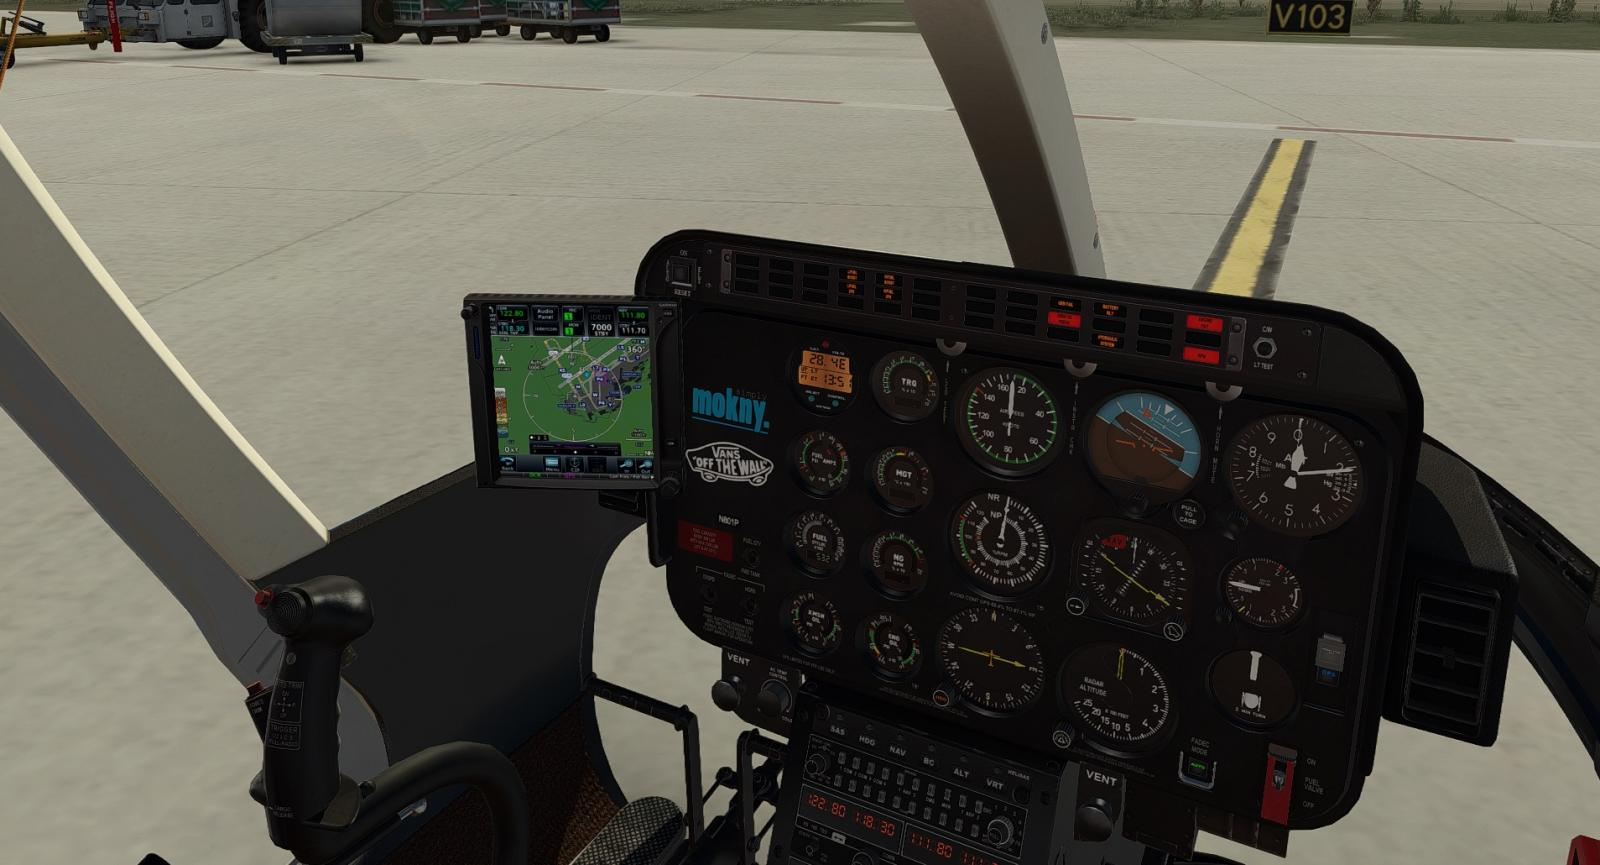 Reality XP GTN 650 installed on panel for XP11? - Bell 407 - X-Plane